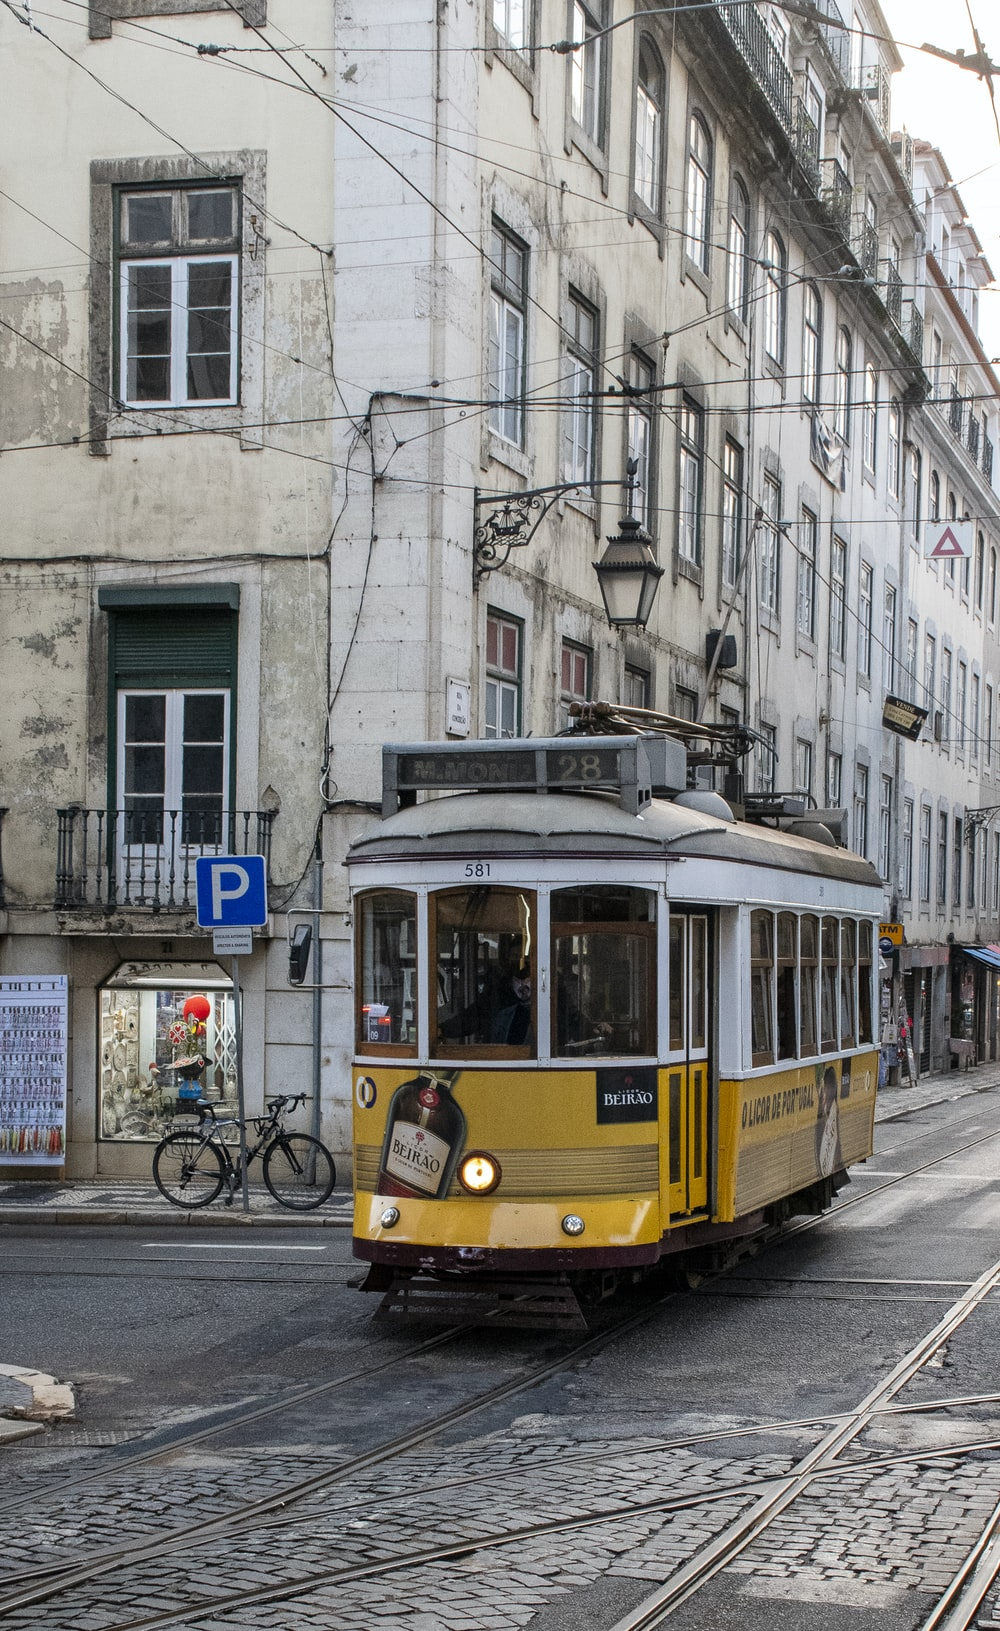 yellow tram on road near building during daytime